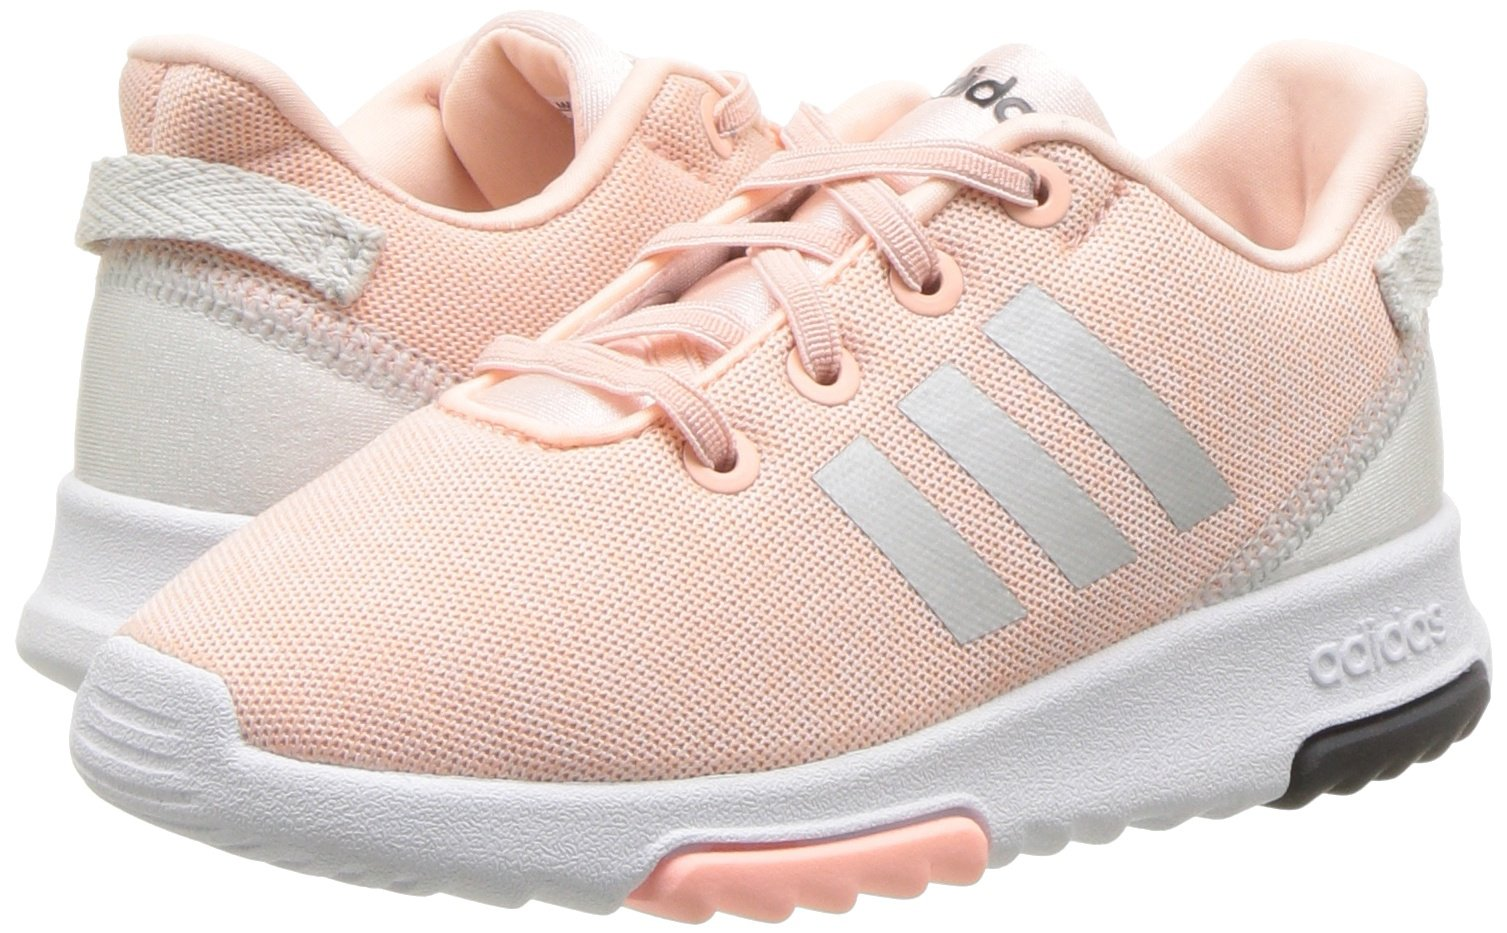 adidas Kids CF Racer TR Running Shoe, Haze Coral/Metallic Silver/White, 4K M US Toddler by adidas (Image #6)